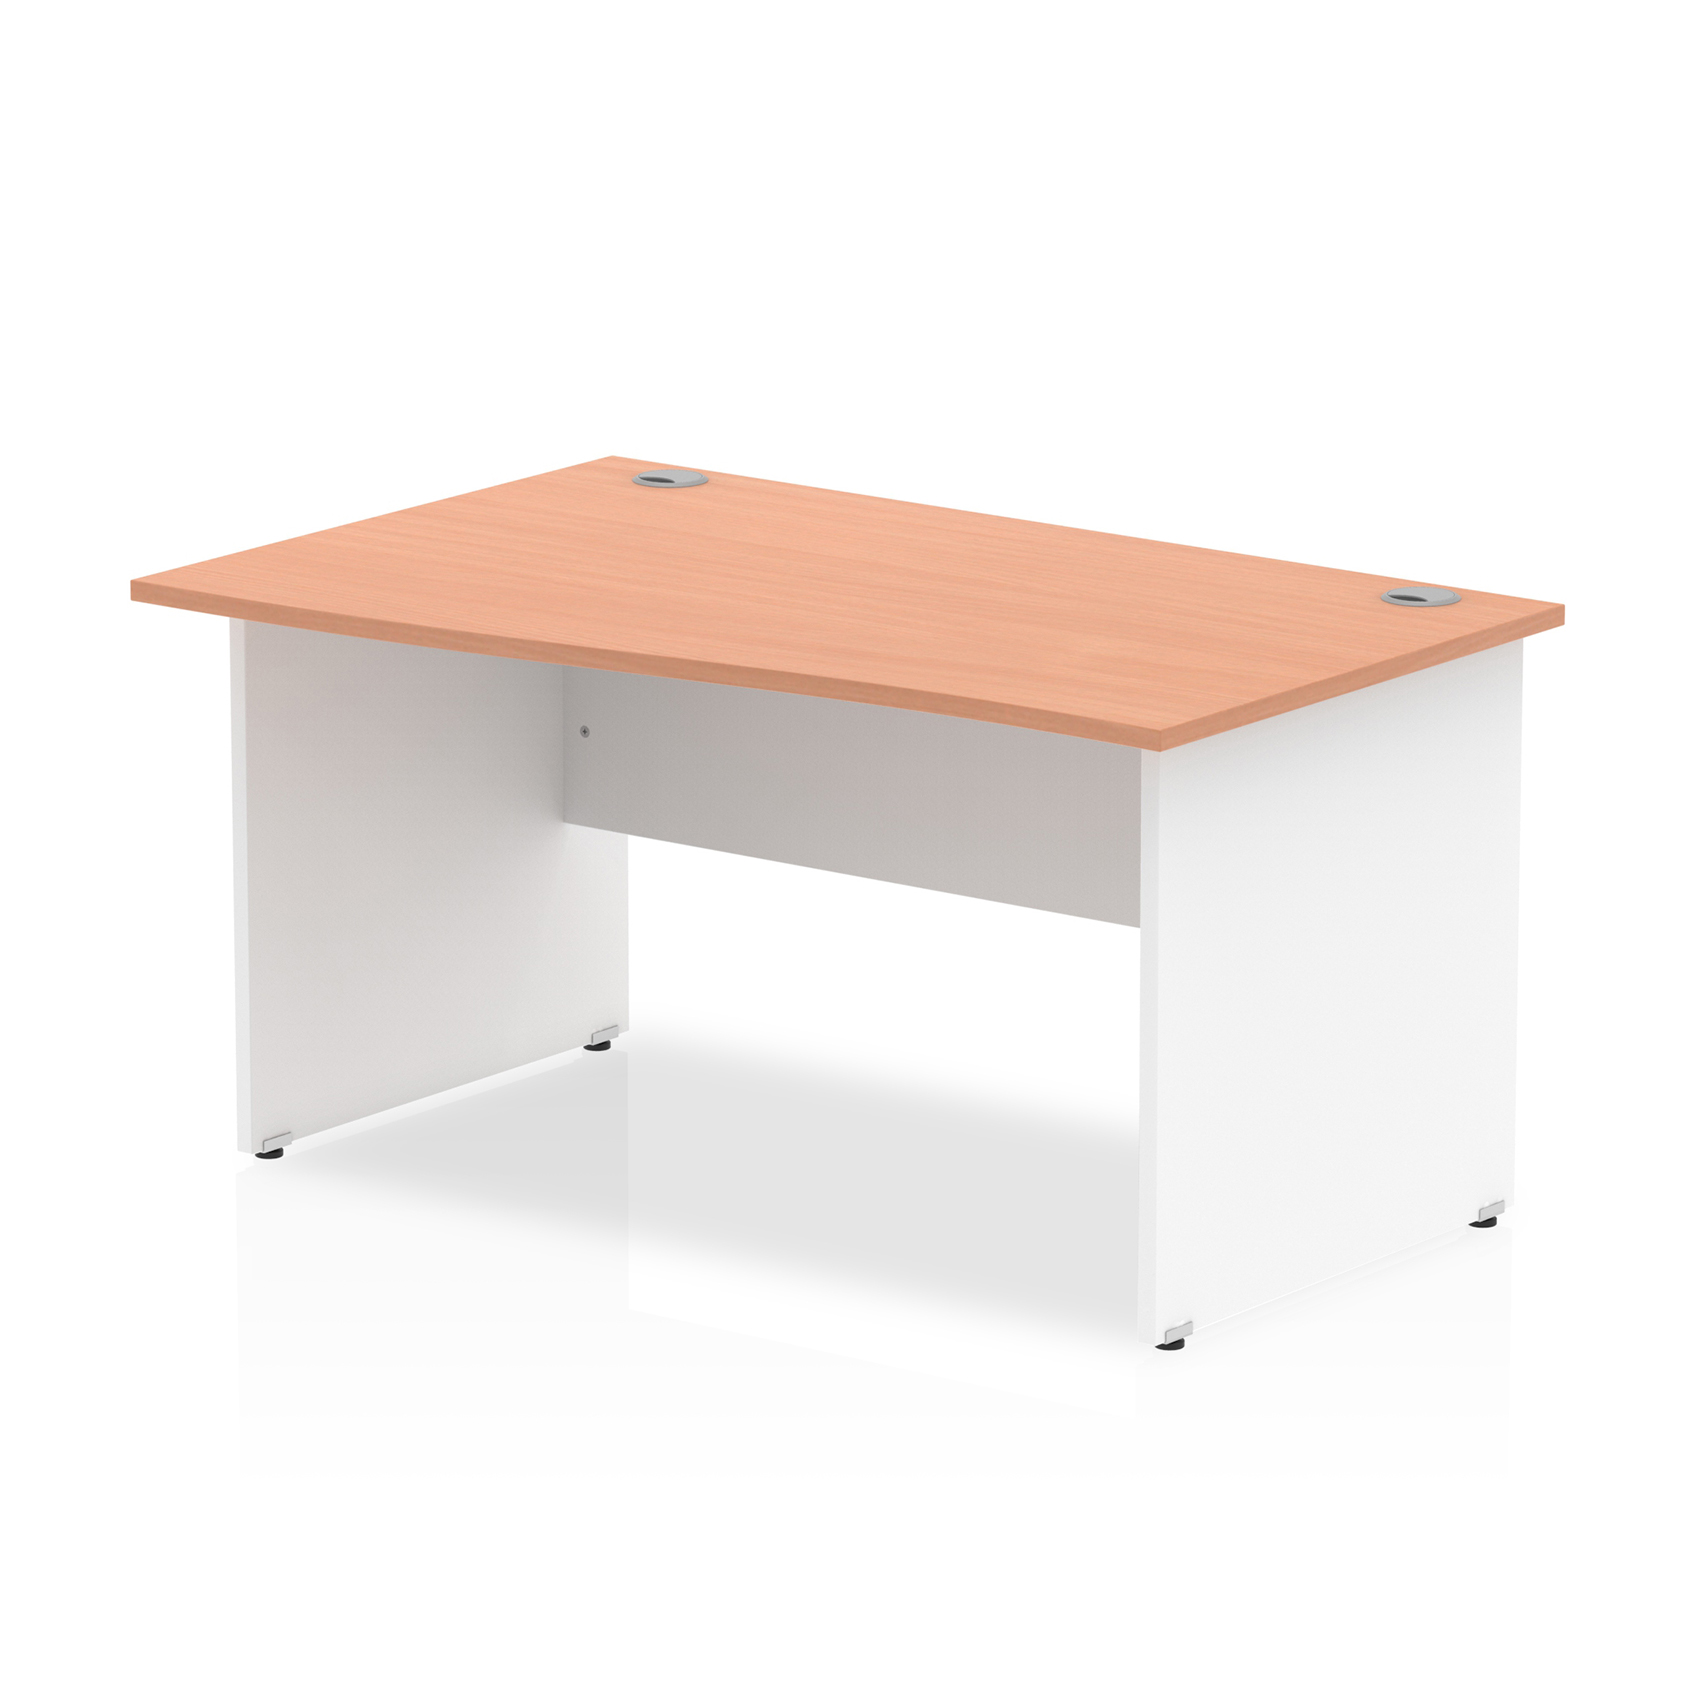 Trexus Desk Wave Left Hand Panel End 1400x800mm Beech Top White Panels Ref TT000051